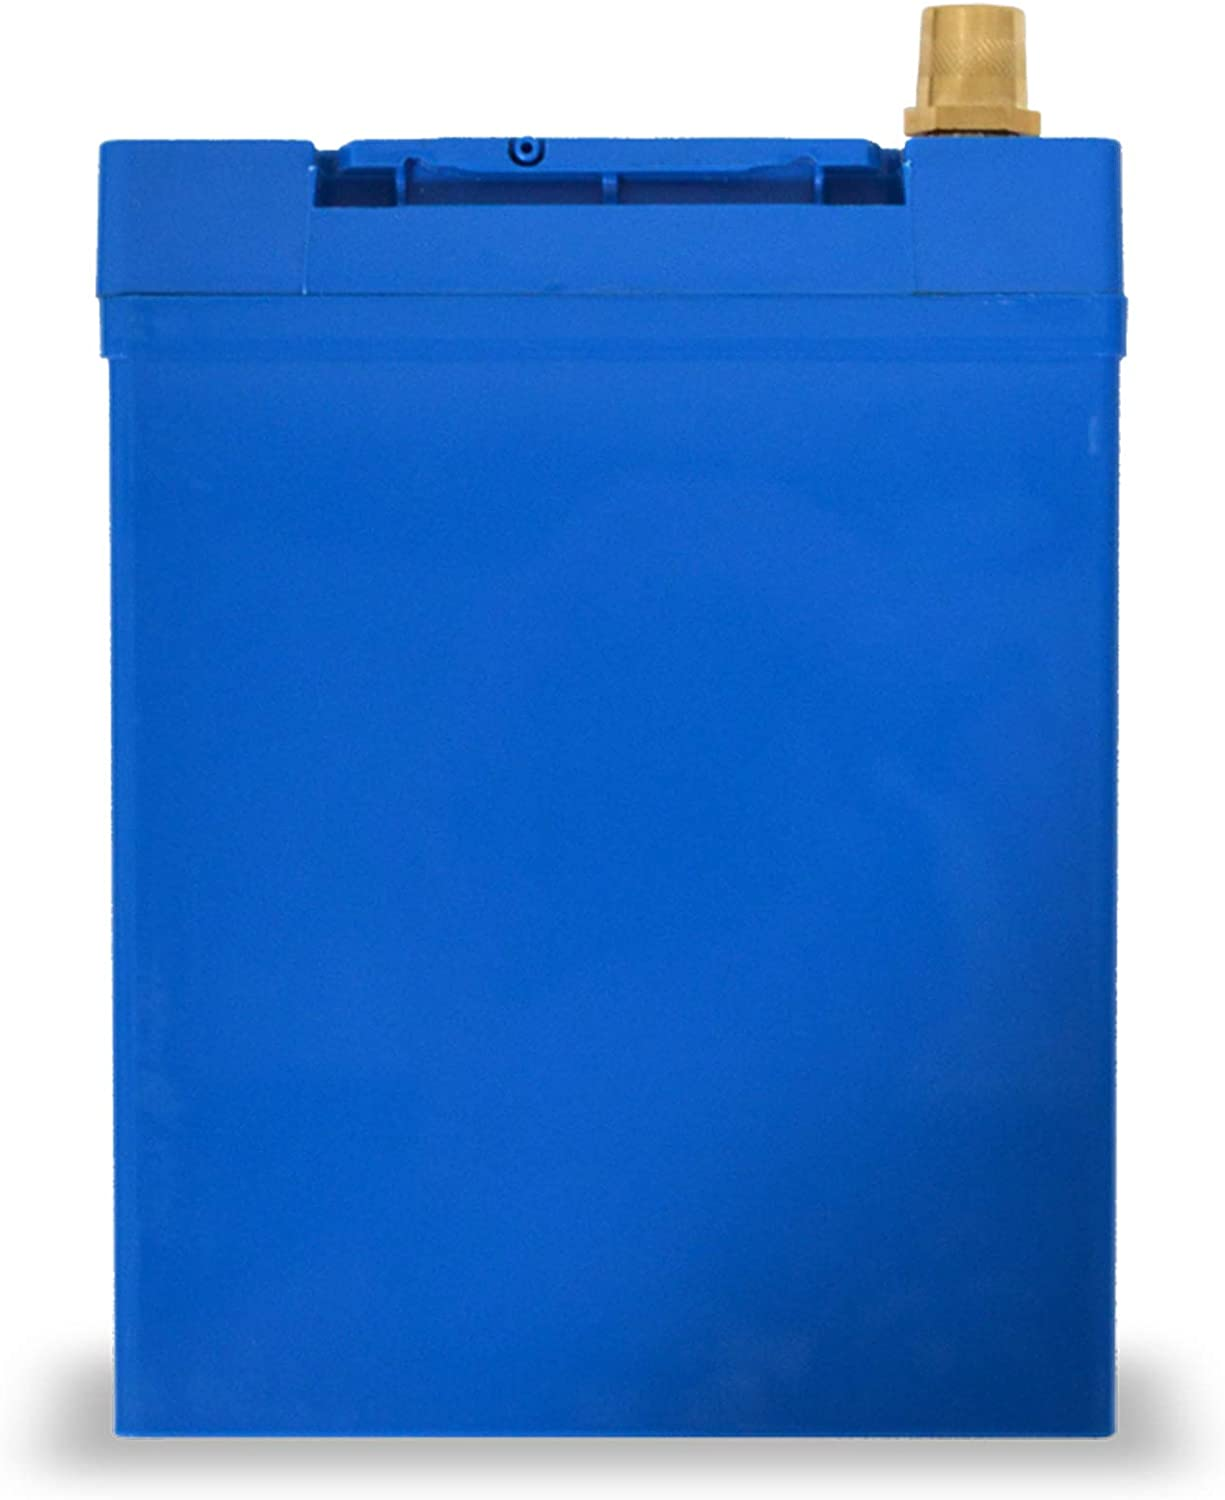 Fullriver Group 24 12V 85Ah AGM Sealed Lead Acid Battery DC85-12